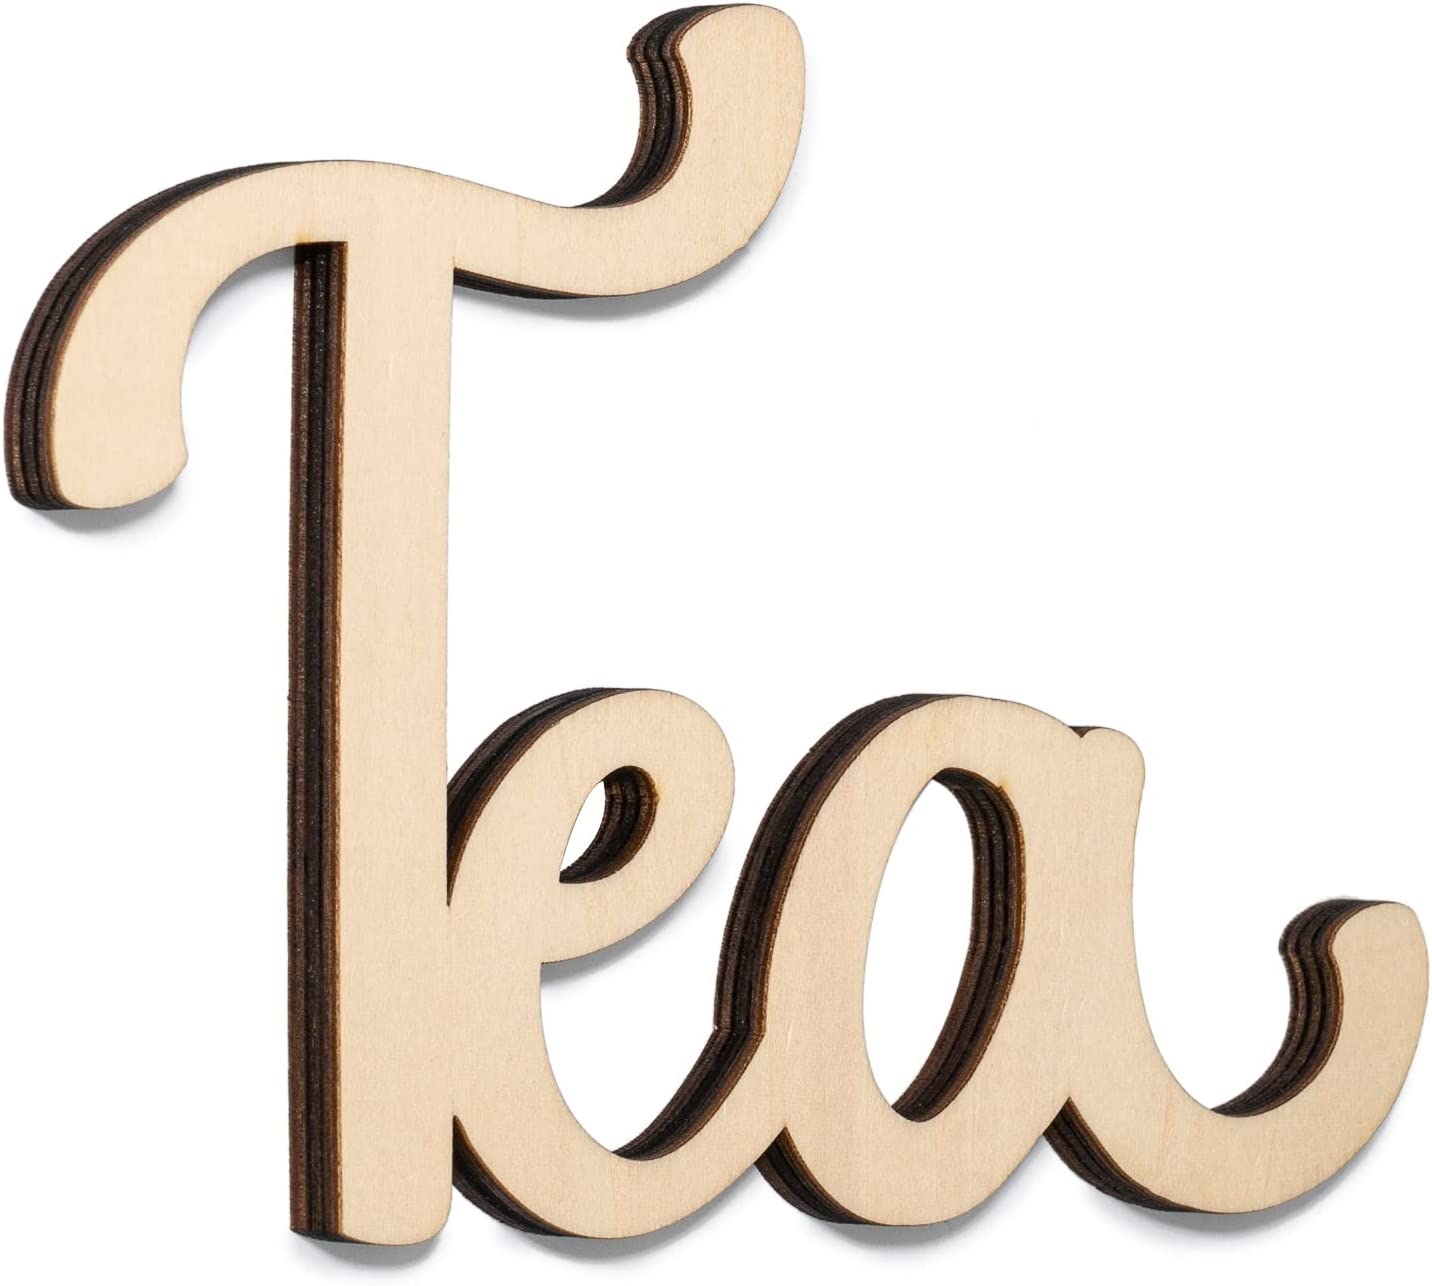 Way Of Hearts Wooden Tea Sign for Wall, Farmhouse Kitchen Wall Decor, Rustic Vintage Decorations, Laser Cut Out Word, DIY, Natural Plywood Script, 7.4